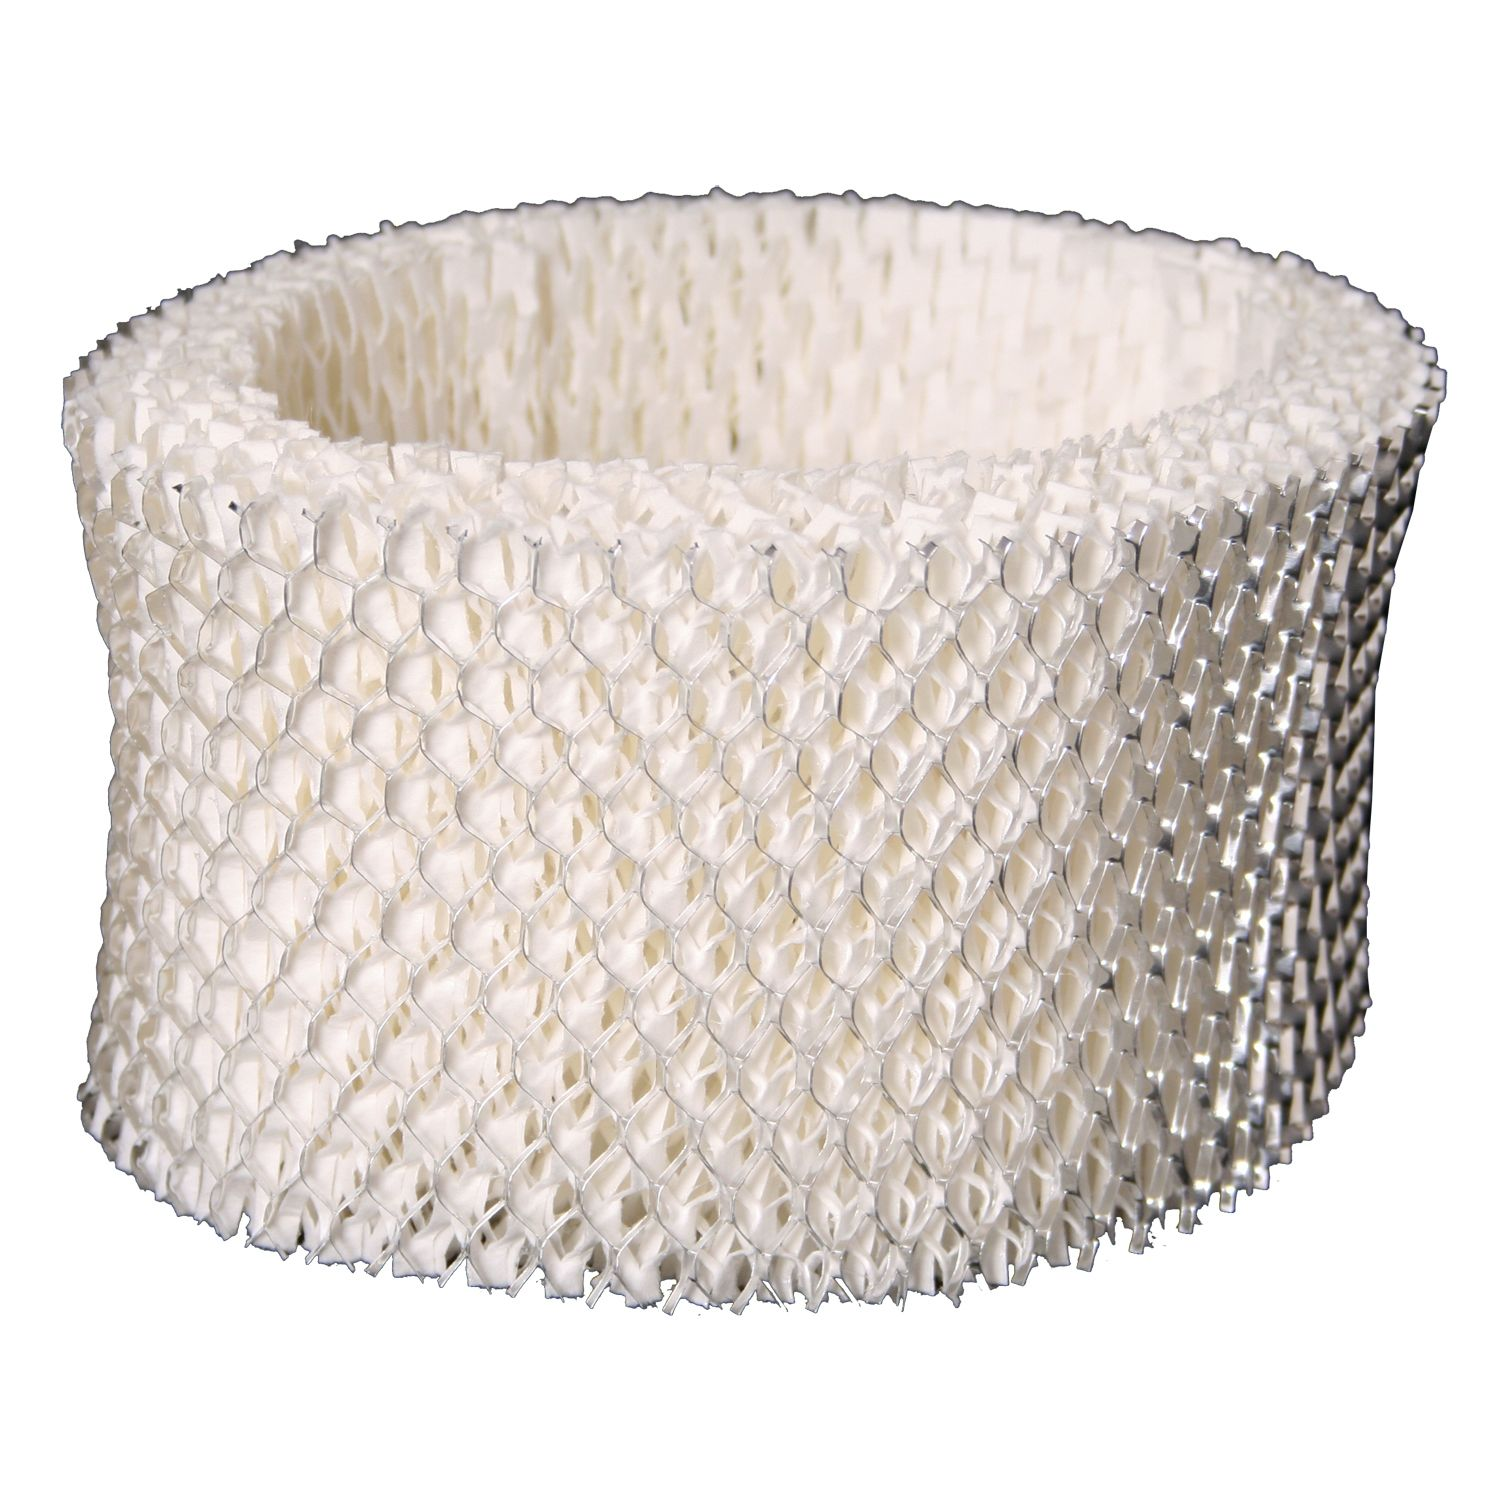 BESTAIR Humidi-WICK Humidifier Wick Filter H62-C H85